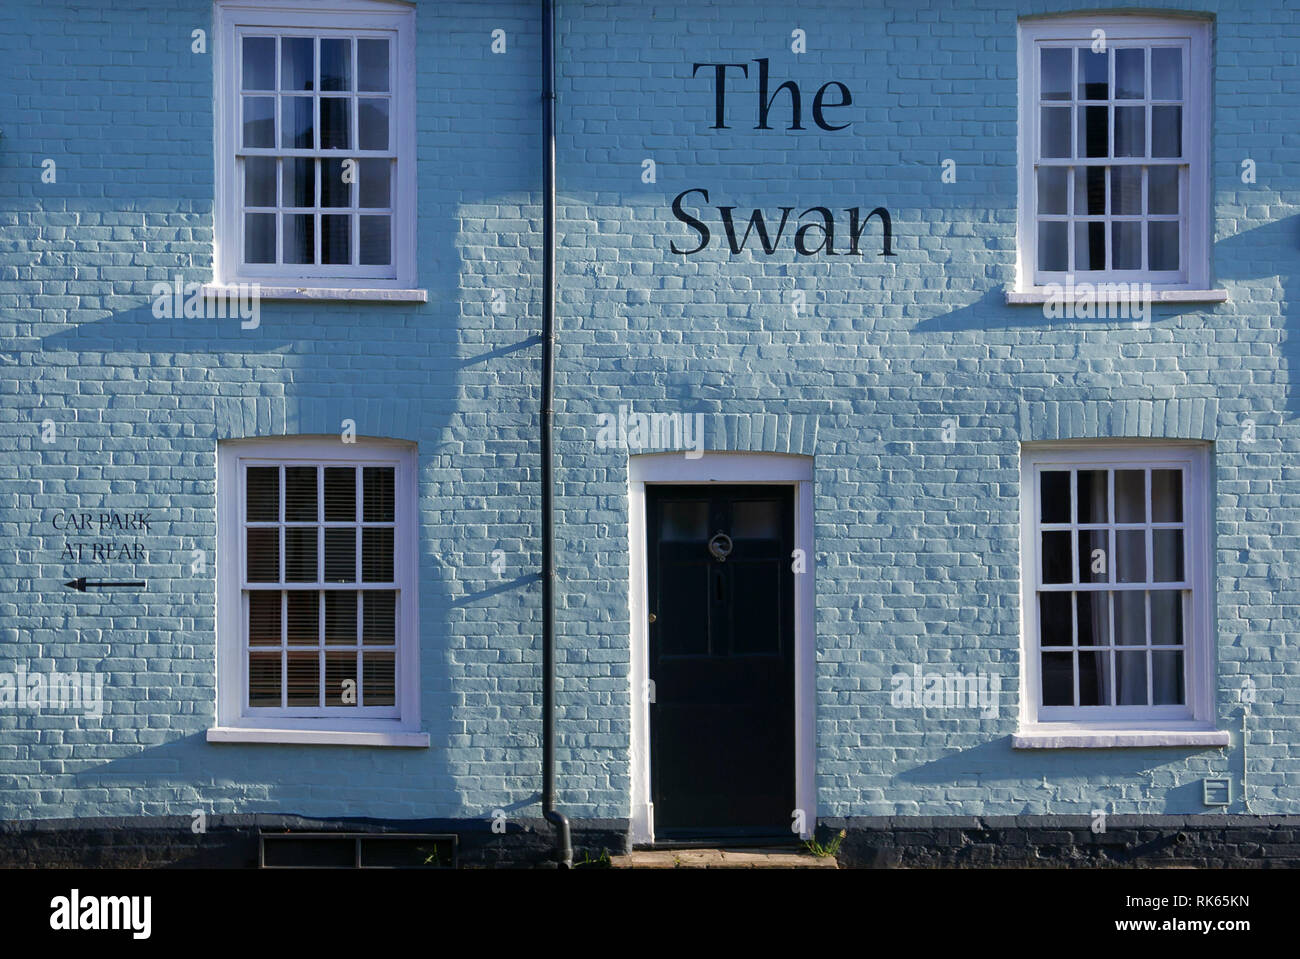 20-01-19. Thaxted, Essex, England,UK. Colourful, colorful, architecture of The Swan Hotel in the centre of town. Photo: © Simon Grosset - Stock Image